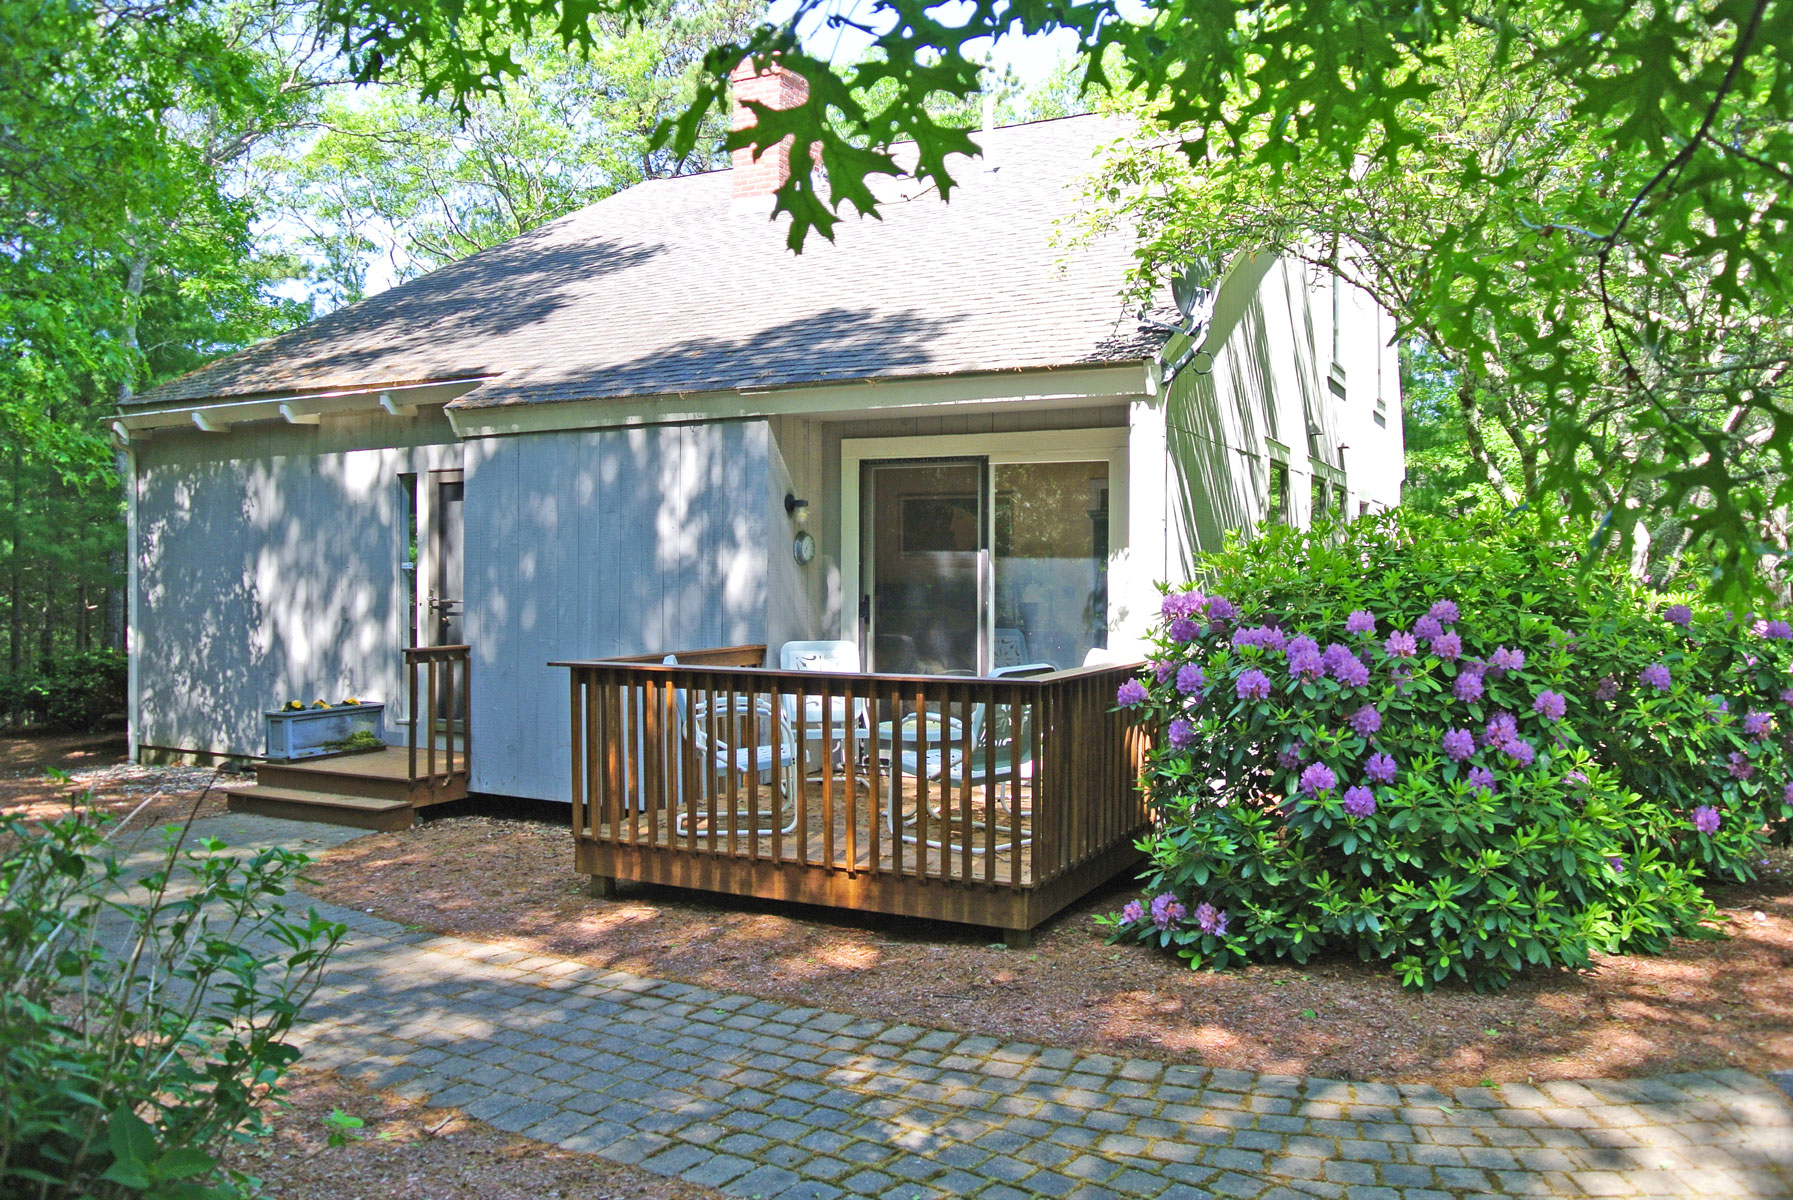 Single Family Home for Sale at UPGRADES ABOUND IN THIS GREENSWARD CONTEMPORARY HOME 11 Slice Way New Seabury, Massachusetts, 02649 United StatesIn/Around: Mashpee